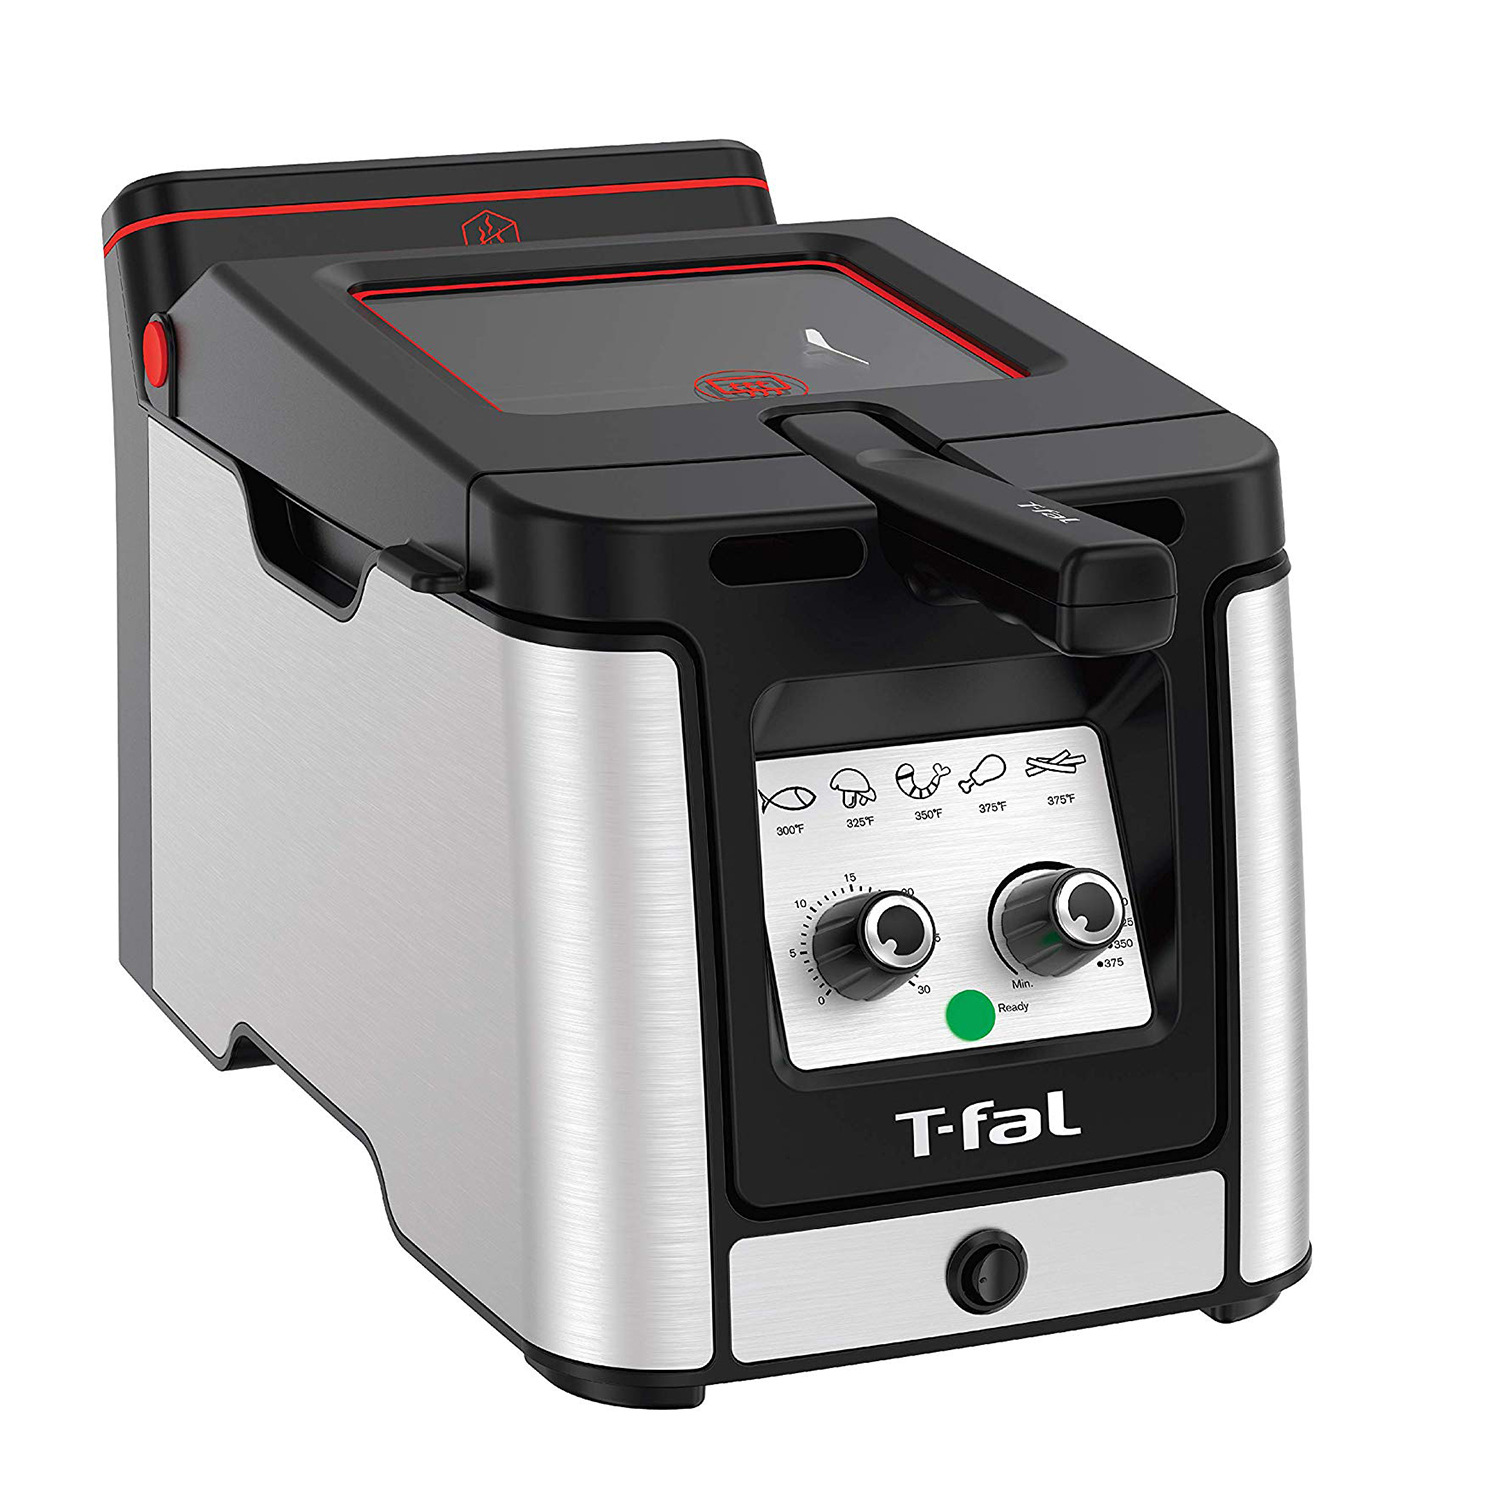 T-fal FR600D51 Odorless Stainless Steel lean Deep Fryer